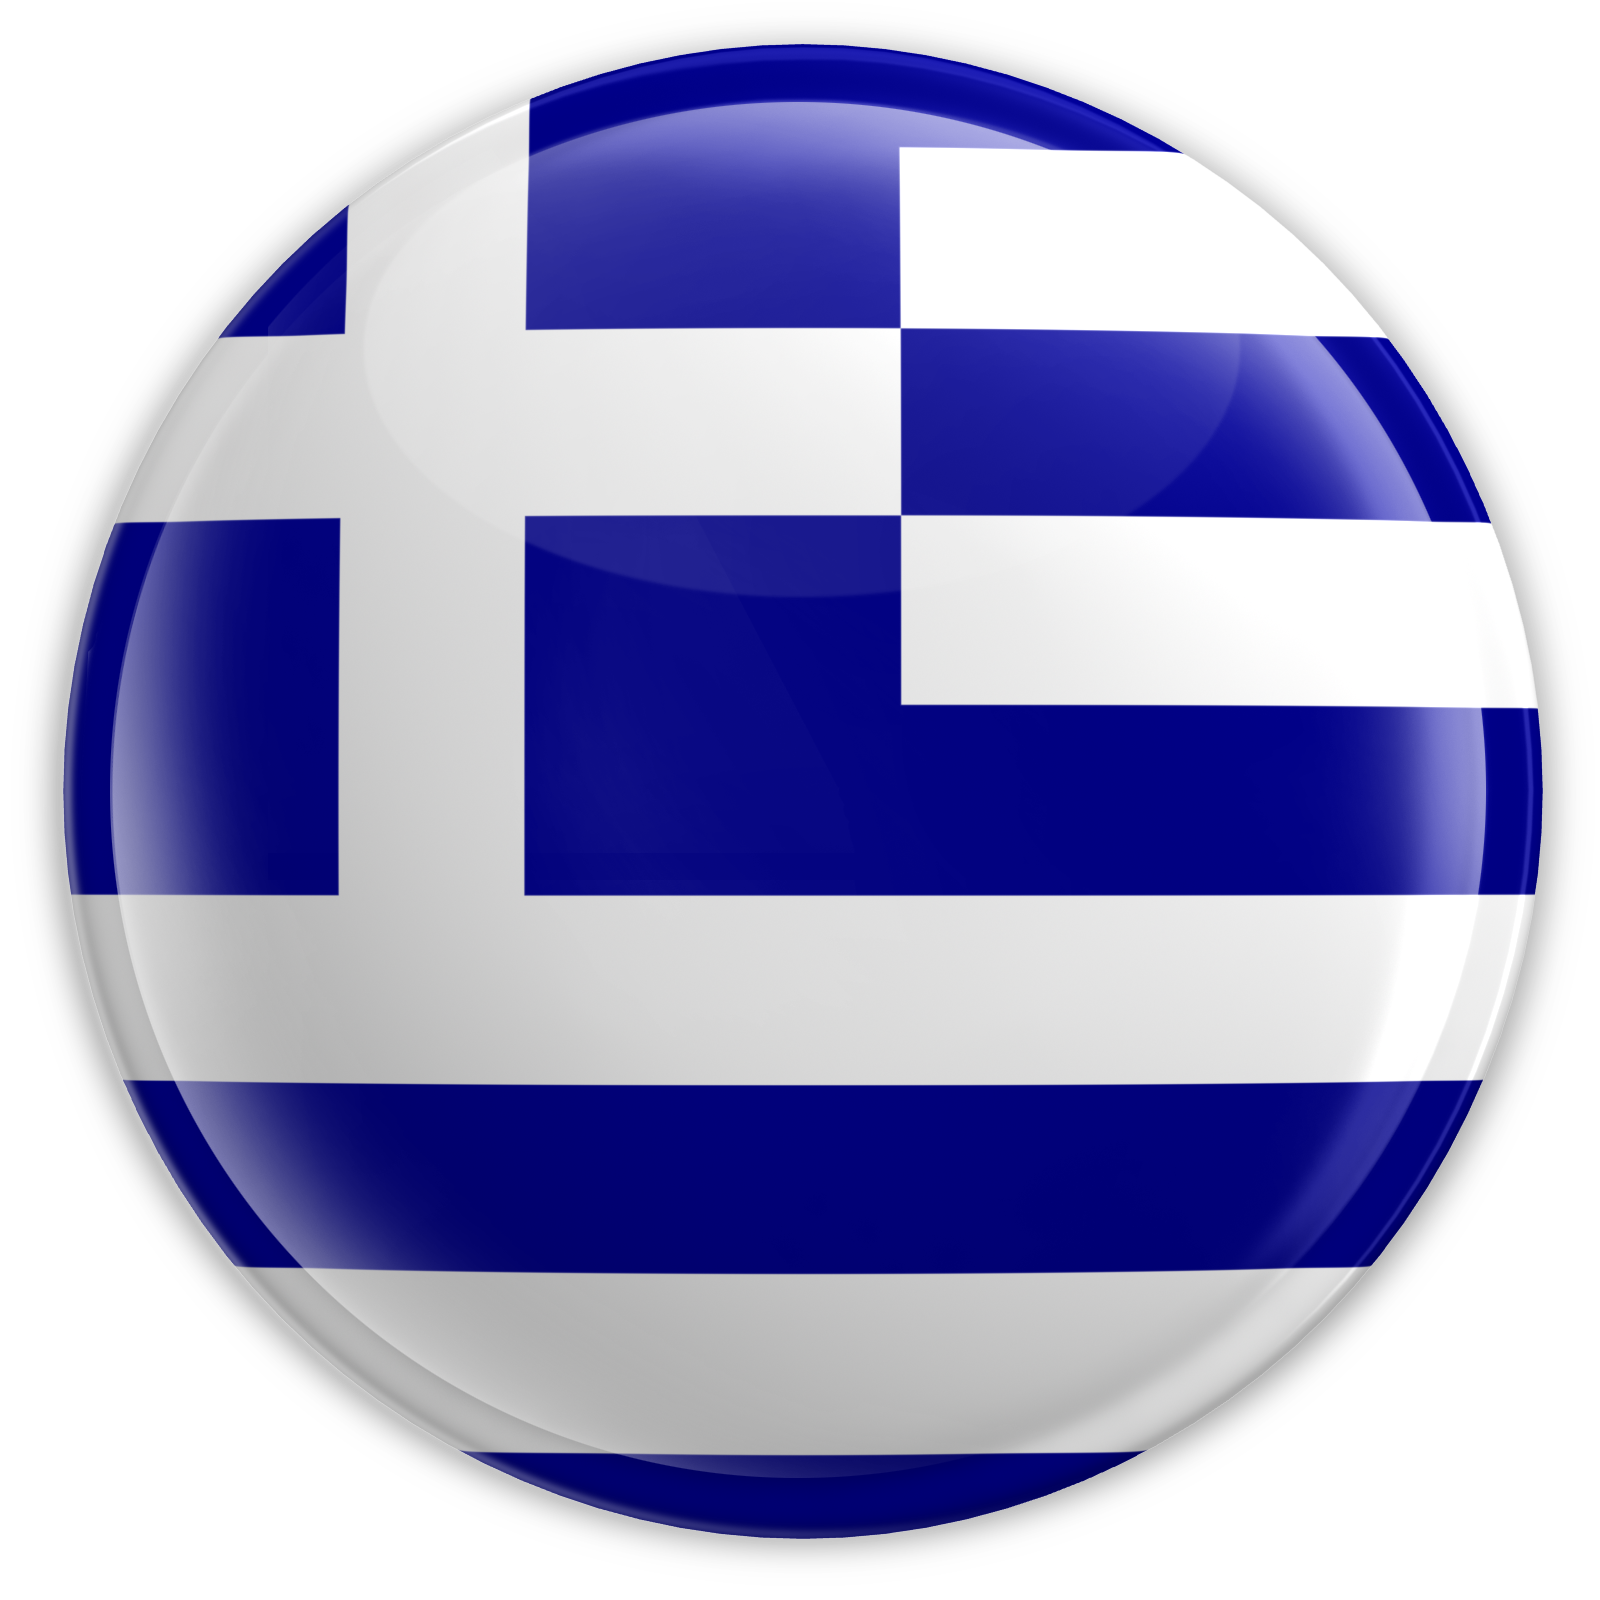 kisspng-flag-of-greece-national-flag-flag-of-china-greek-flag-5b3c3617363e41.2217791115306726632222.png